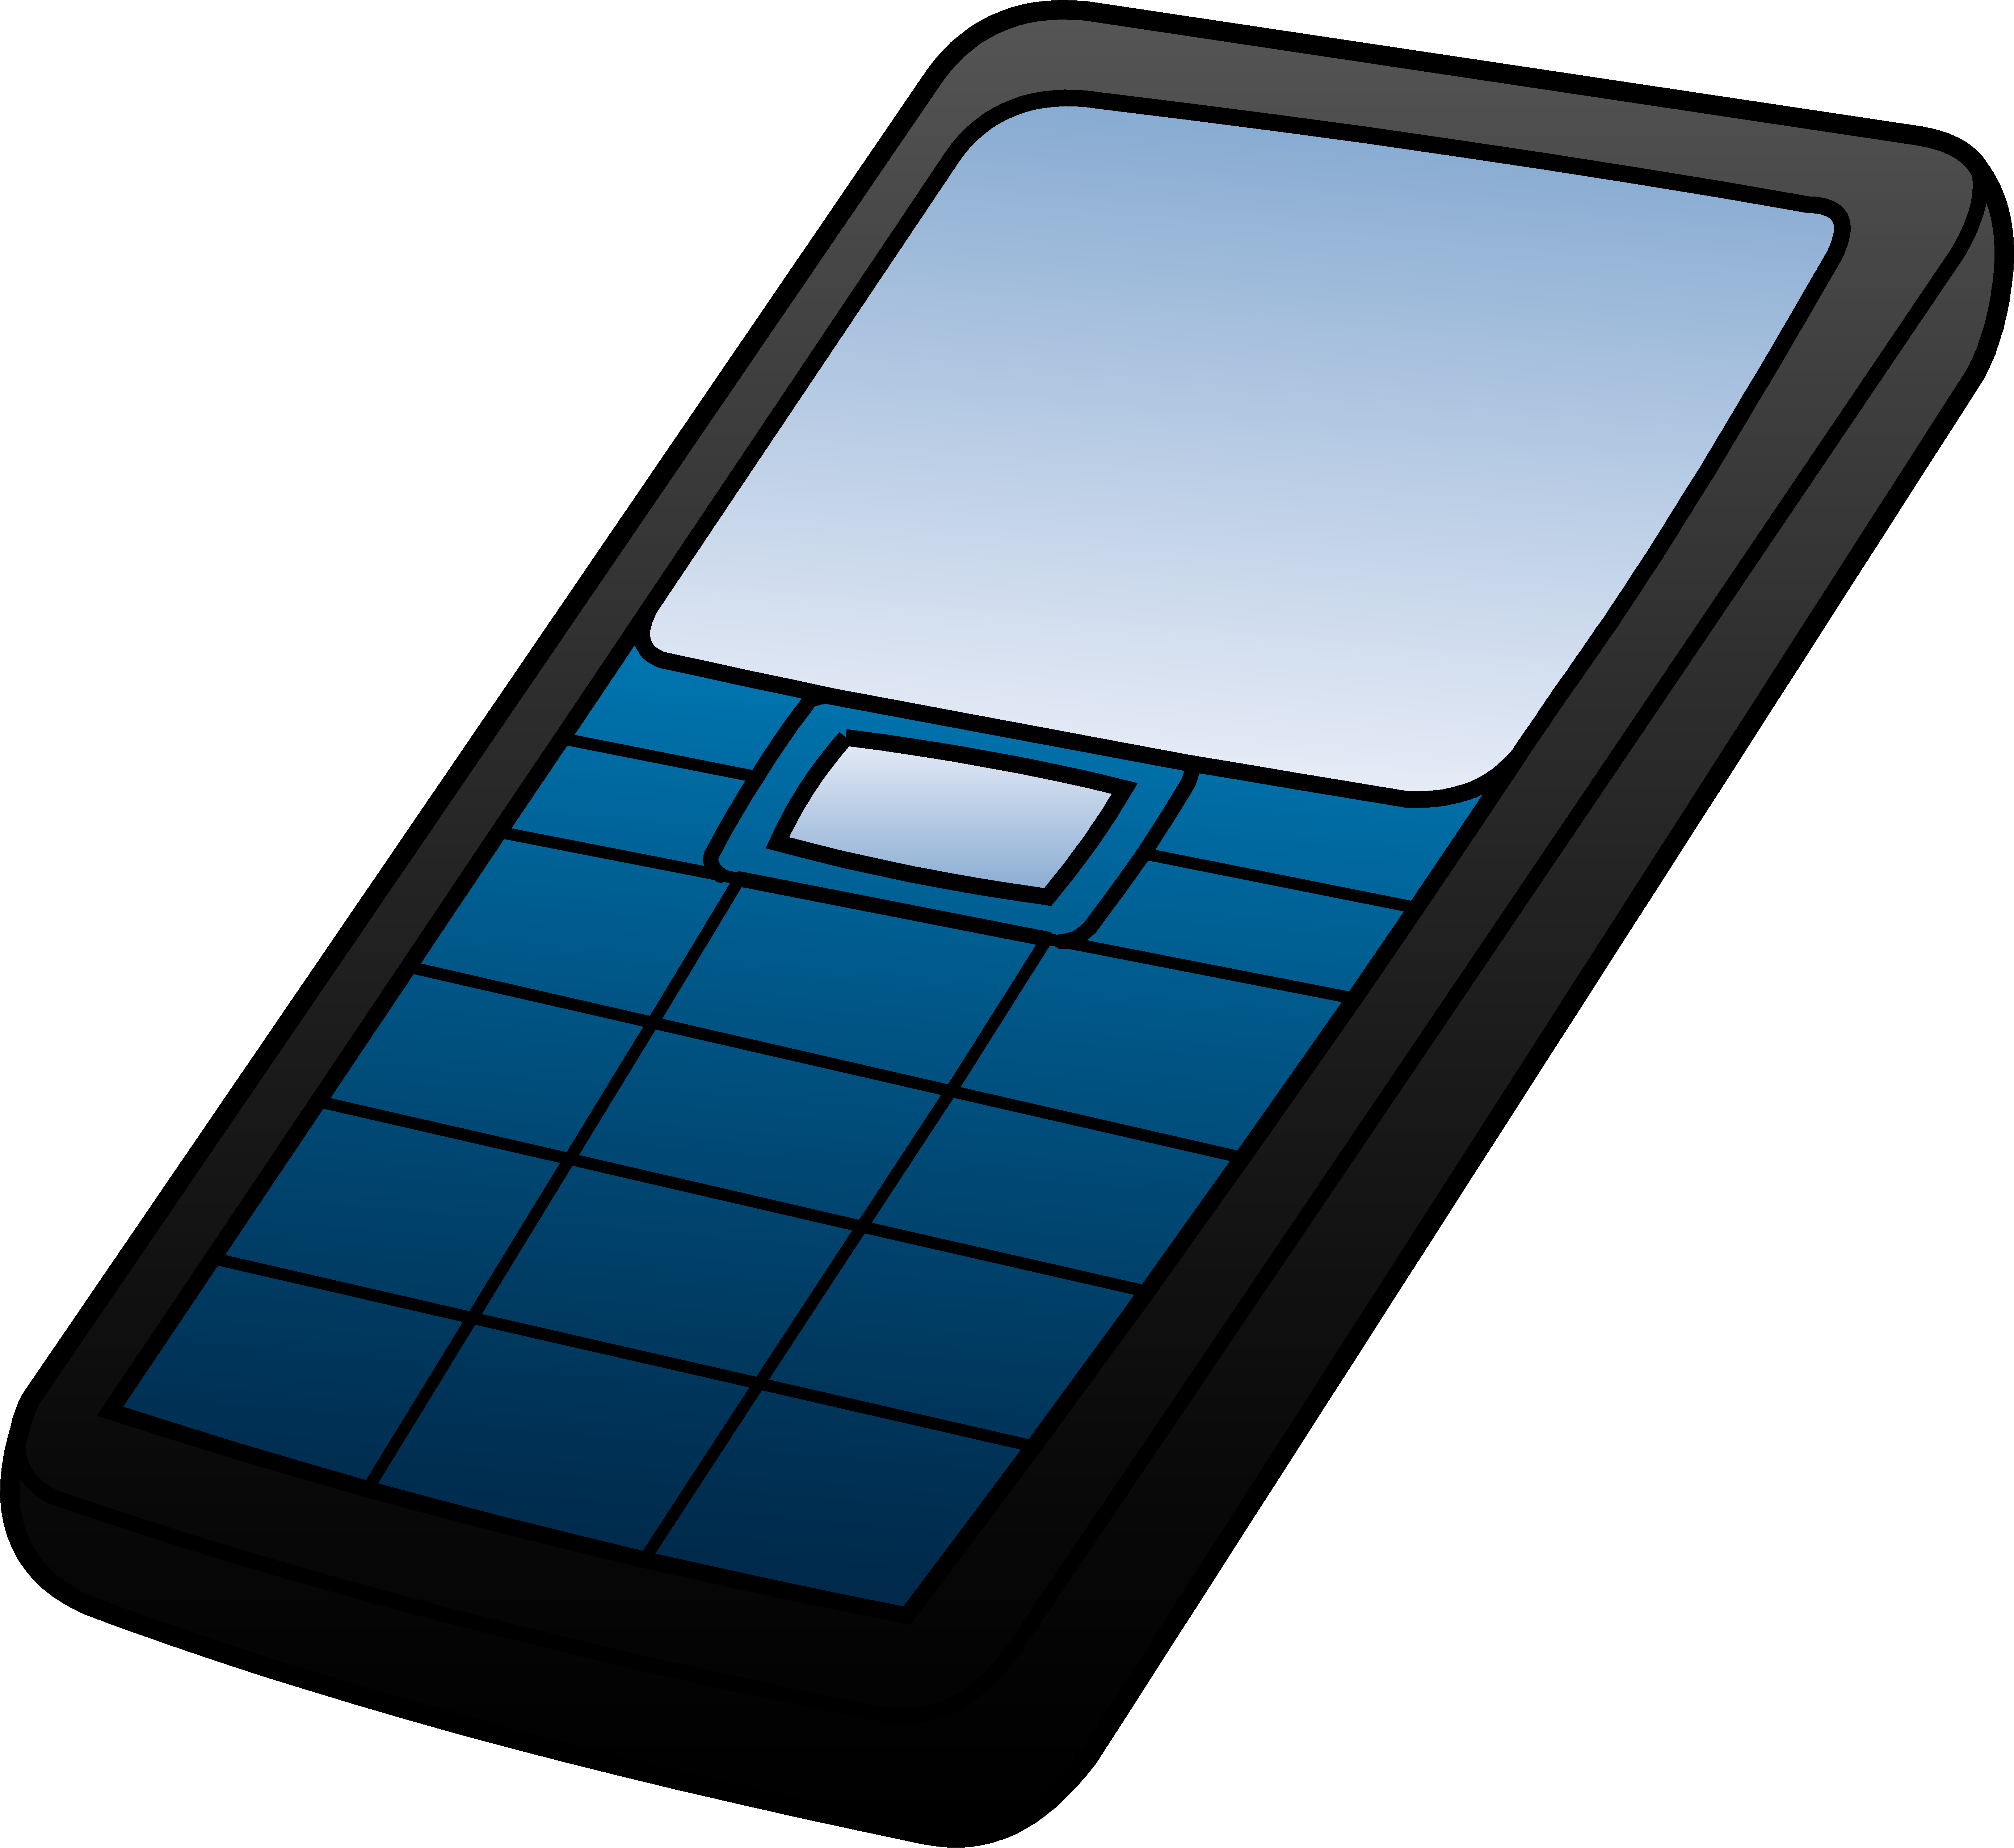 Cell Phone Ringing Clipart-cell phone ringing clipart-2